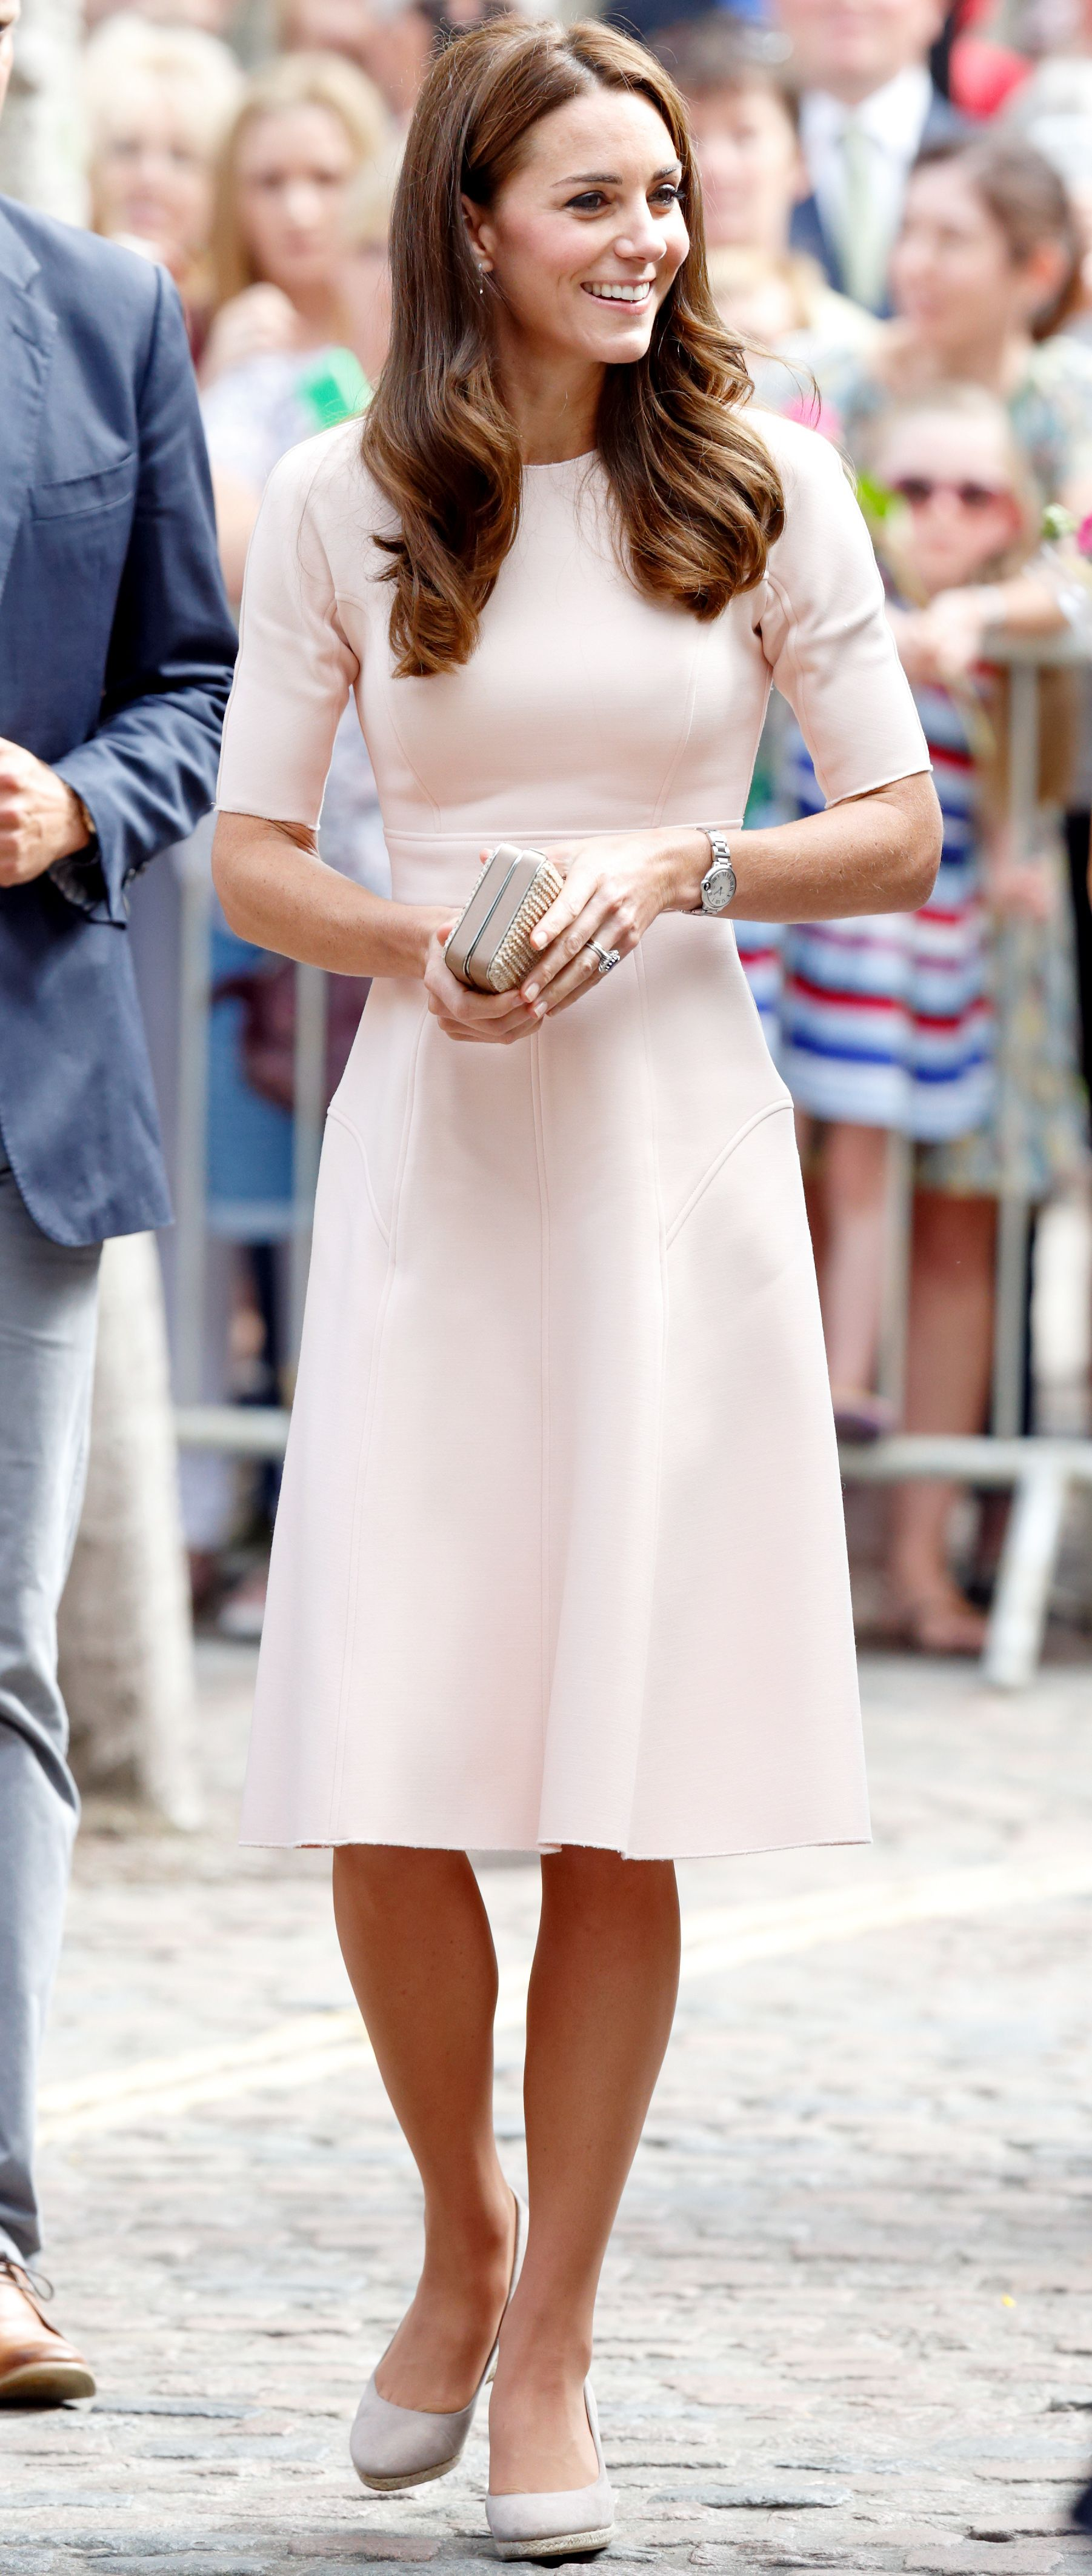 5e9728f3982a9 Kate Middleton's Most Memorable Outfits | My Stitch Fix Inspiration ...